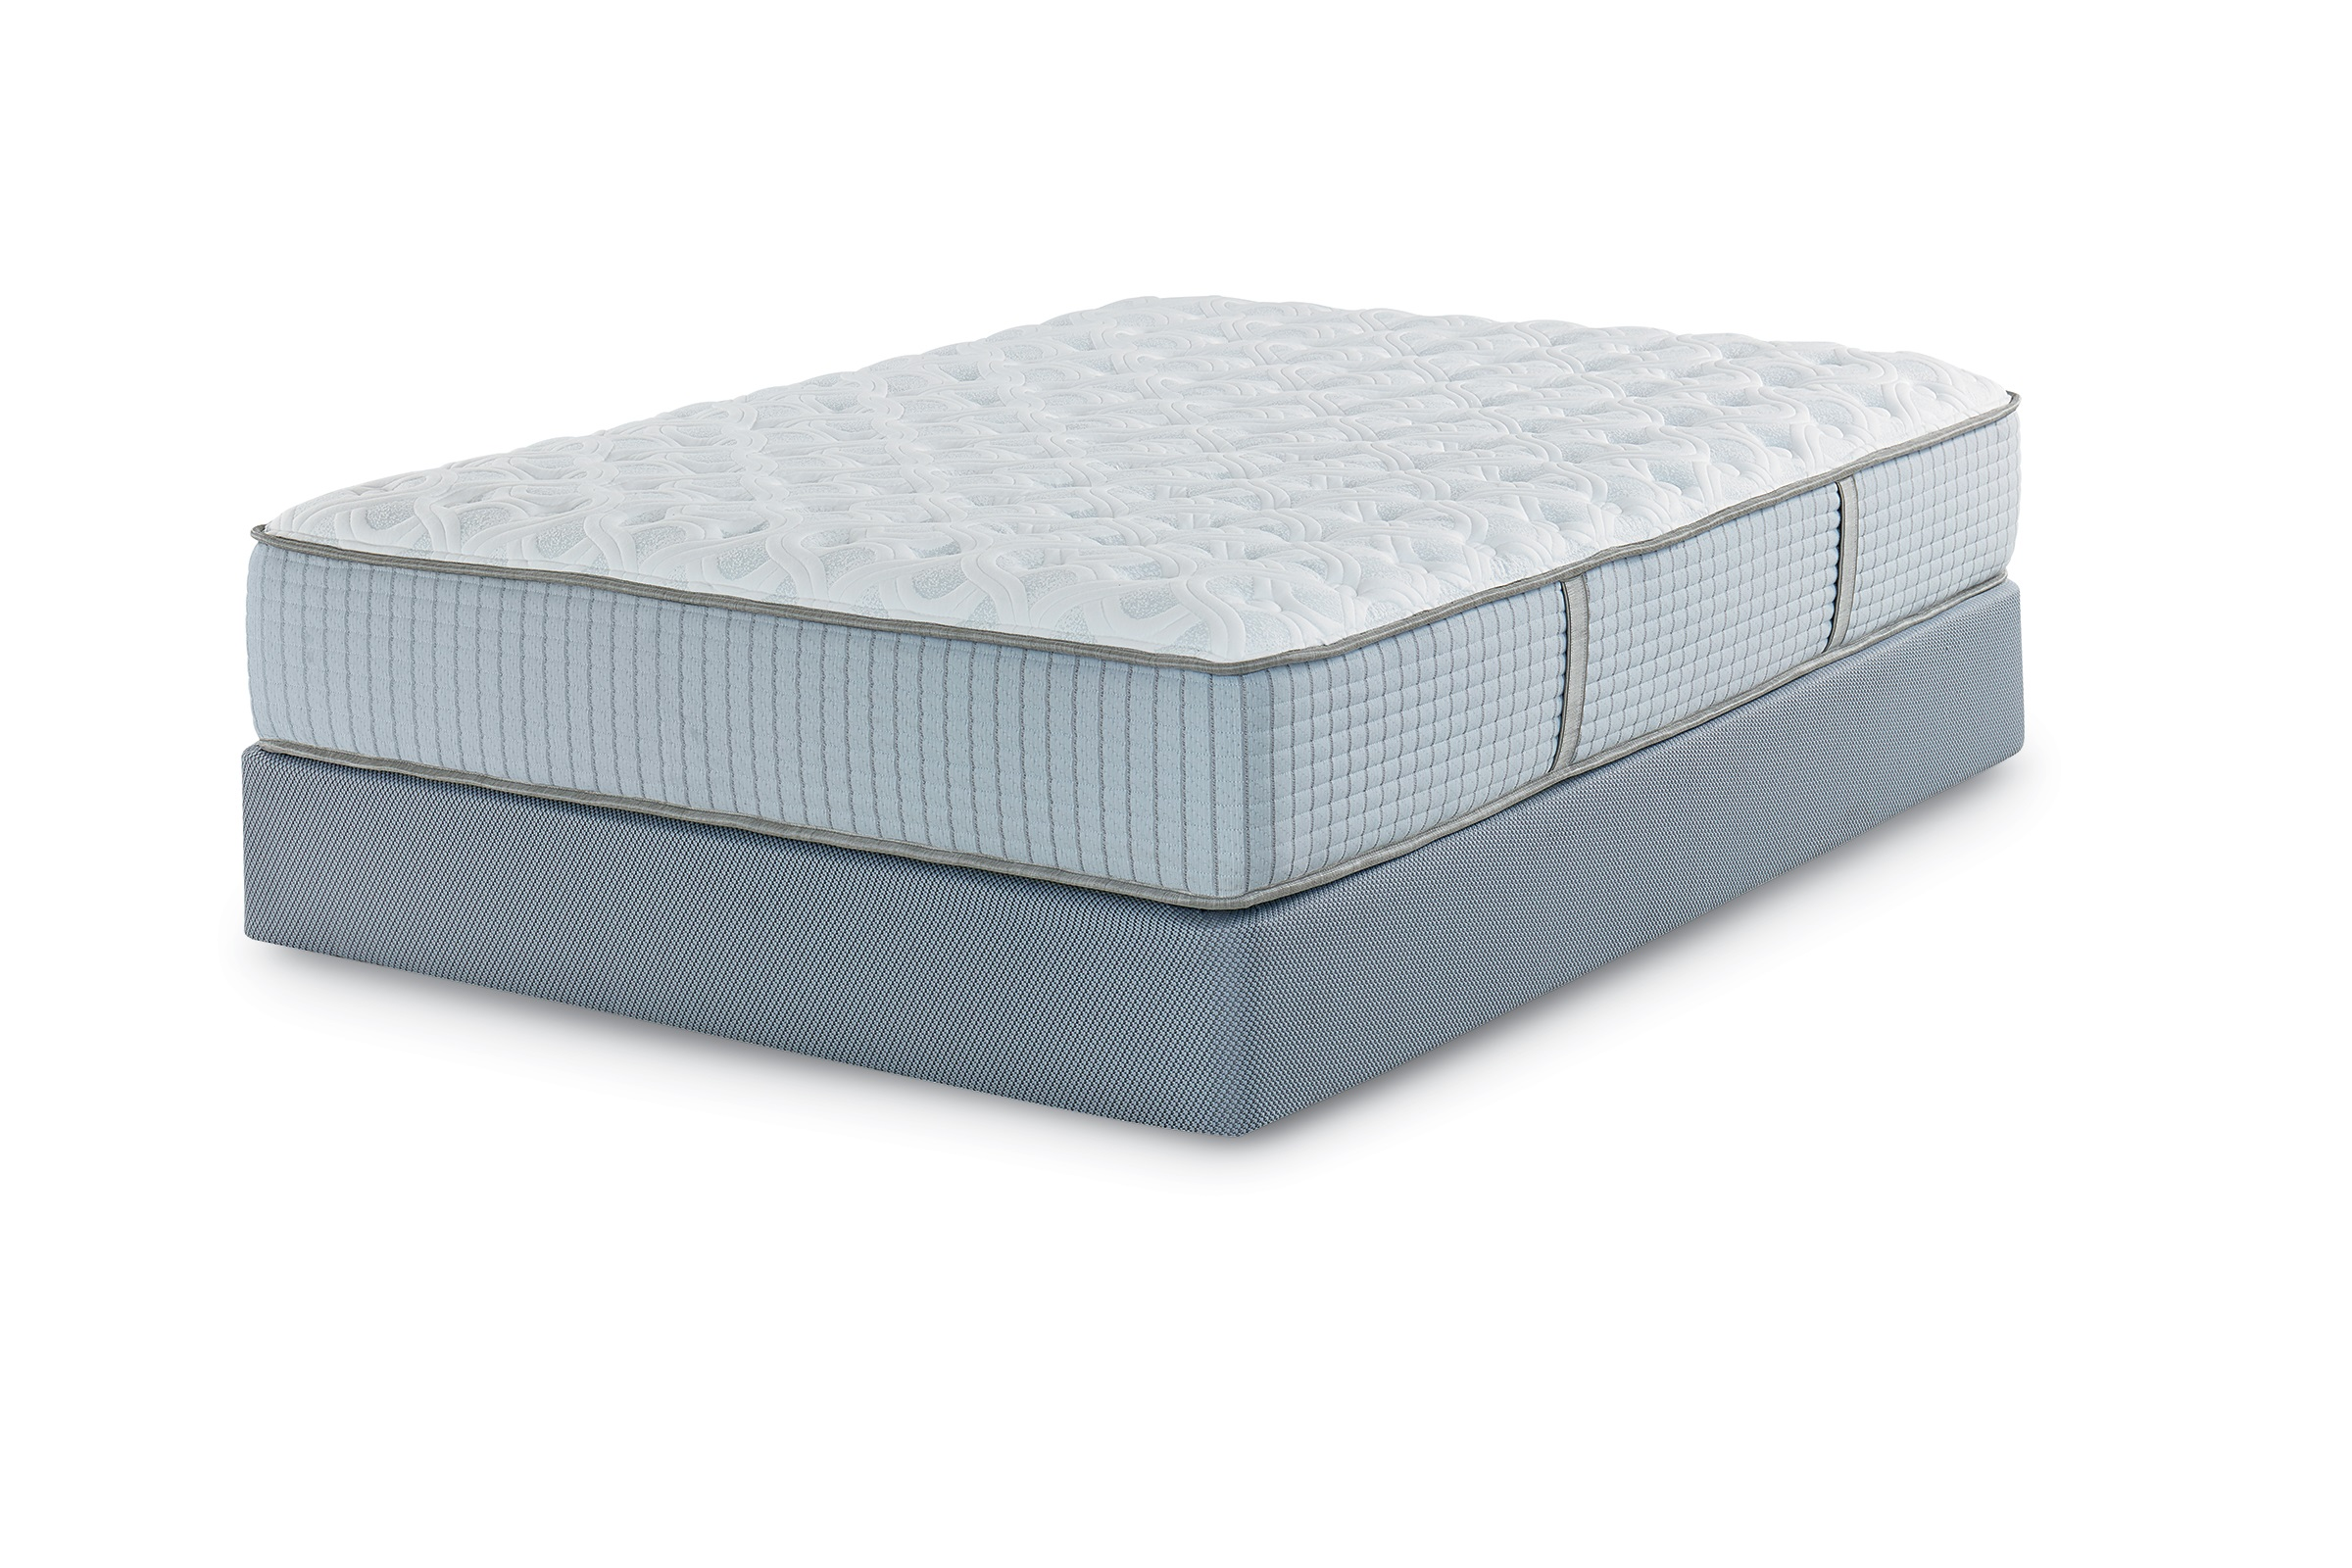 What's The Best Mattress For Your Age & Stage Of Life?